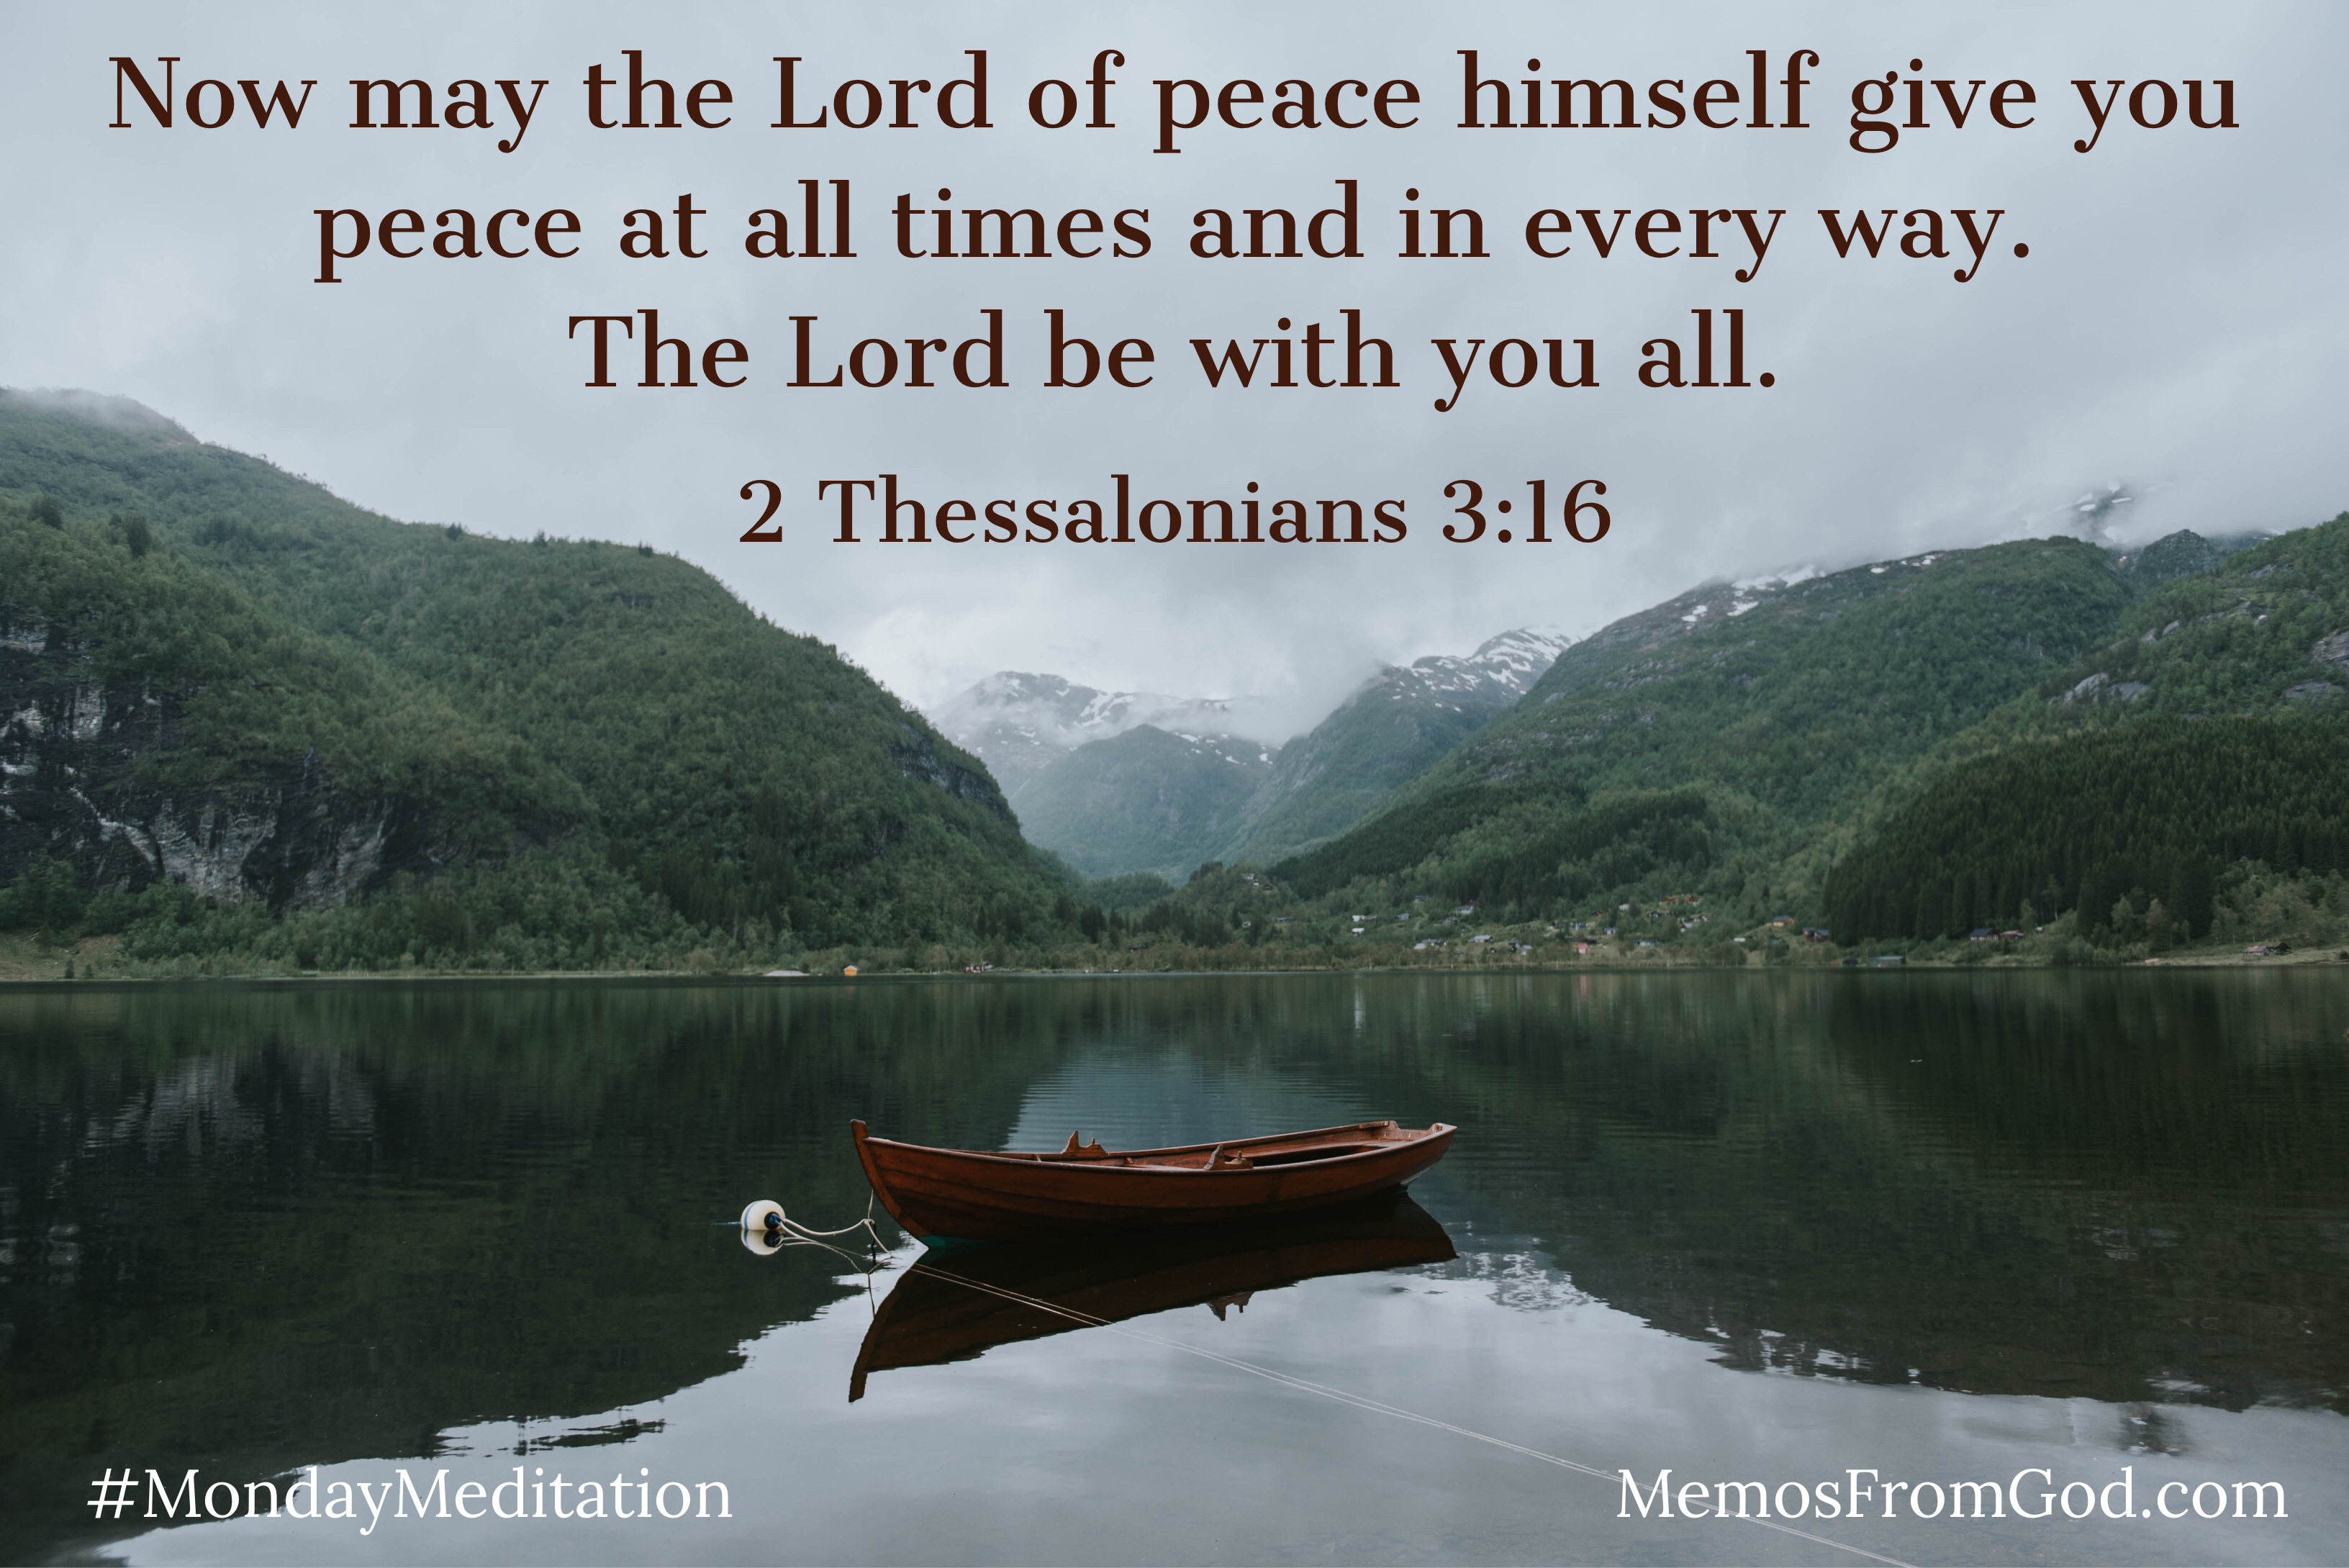 A dark red rowboat anchored in a smooth lake that reflects the dark green of the wooded hills beyond. Caption: Now may the Lord of peace himself give you peace at all times and in every way. The Lord be with you all. 2 Thessalonians 3:16